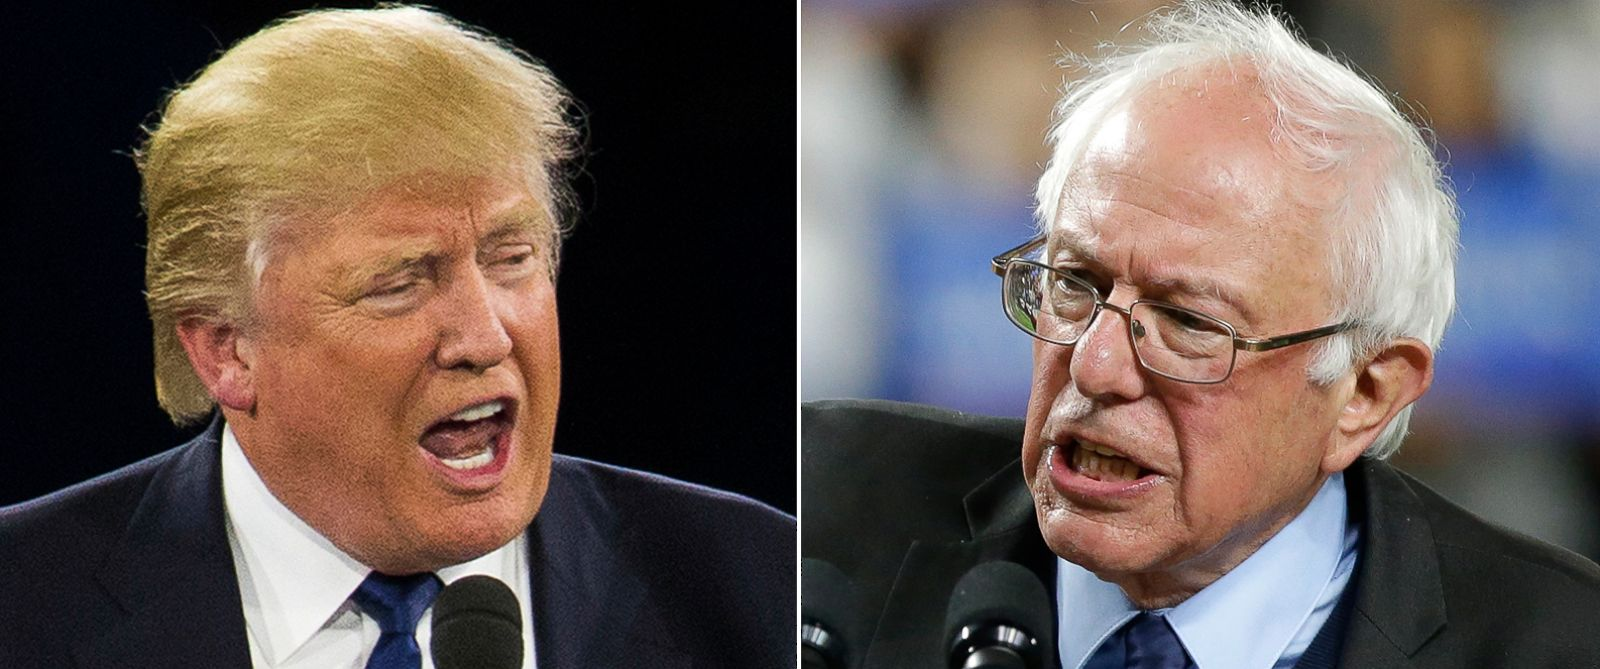 PHOTO: Pictured (L-R) are Donald Trump in Washington, March 21, 2016 and Bernie Sanders in Seattle, March 25, 2016.